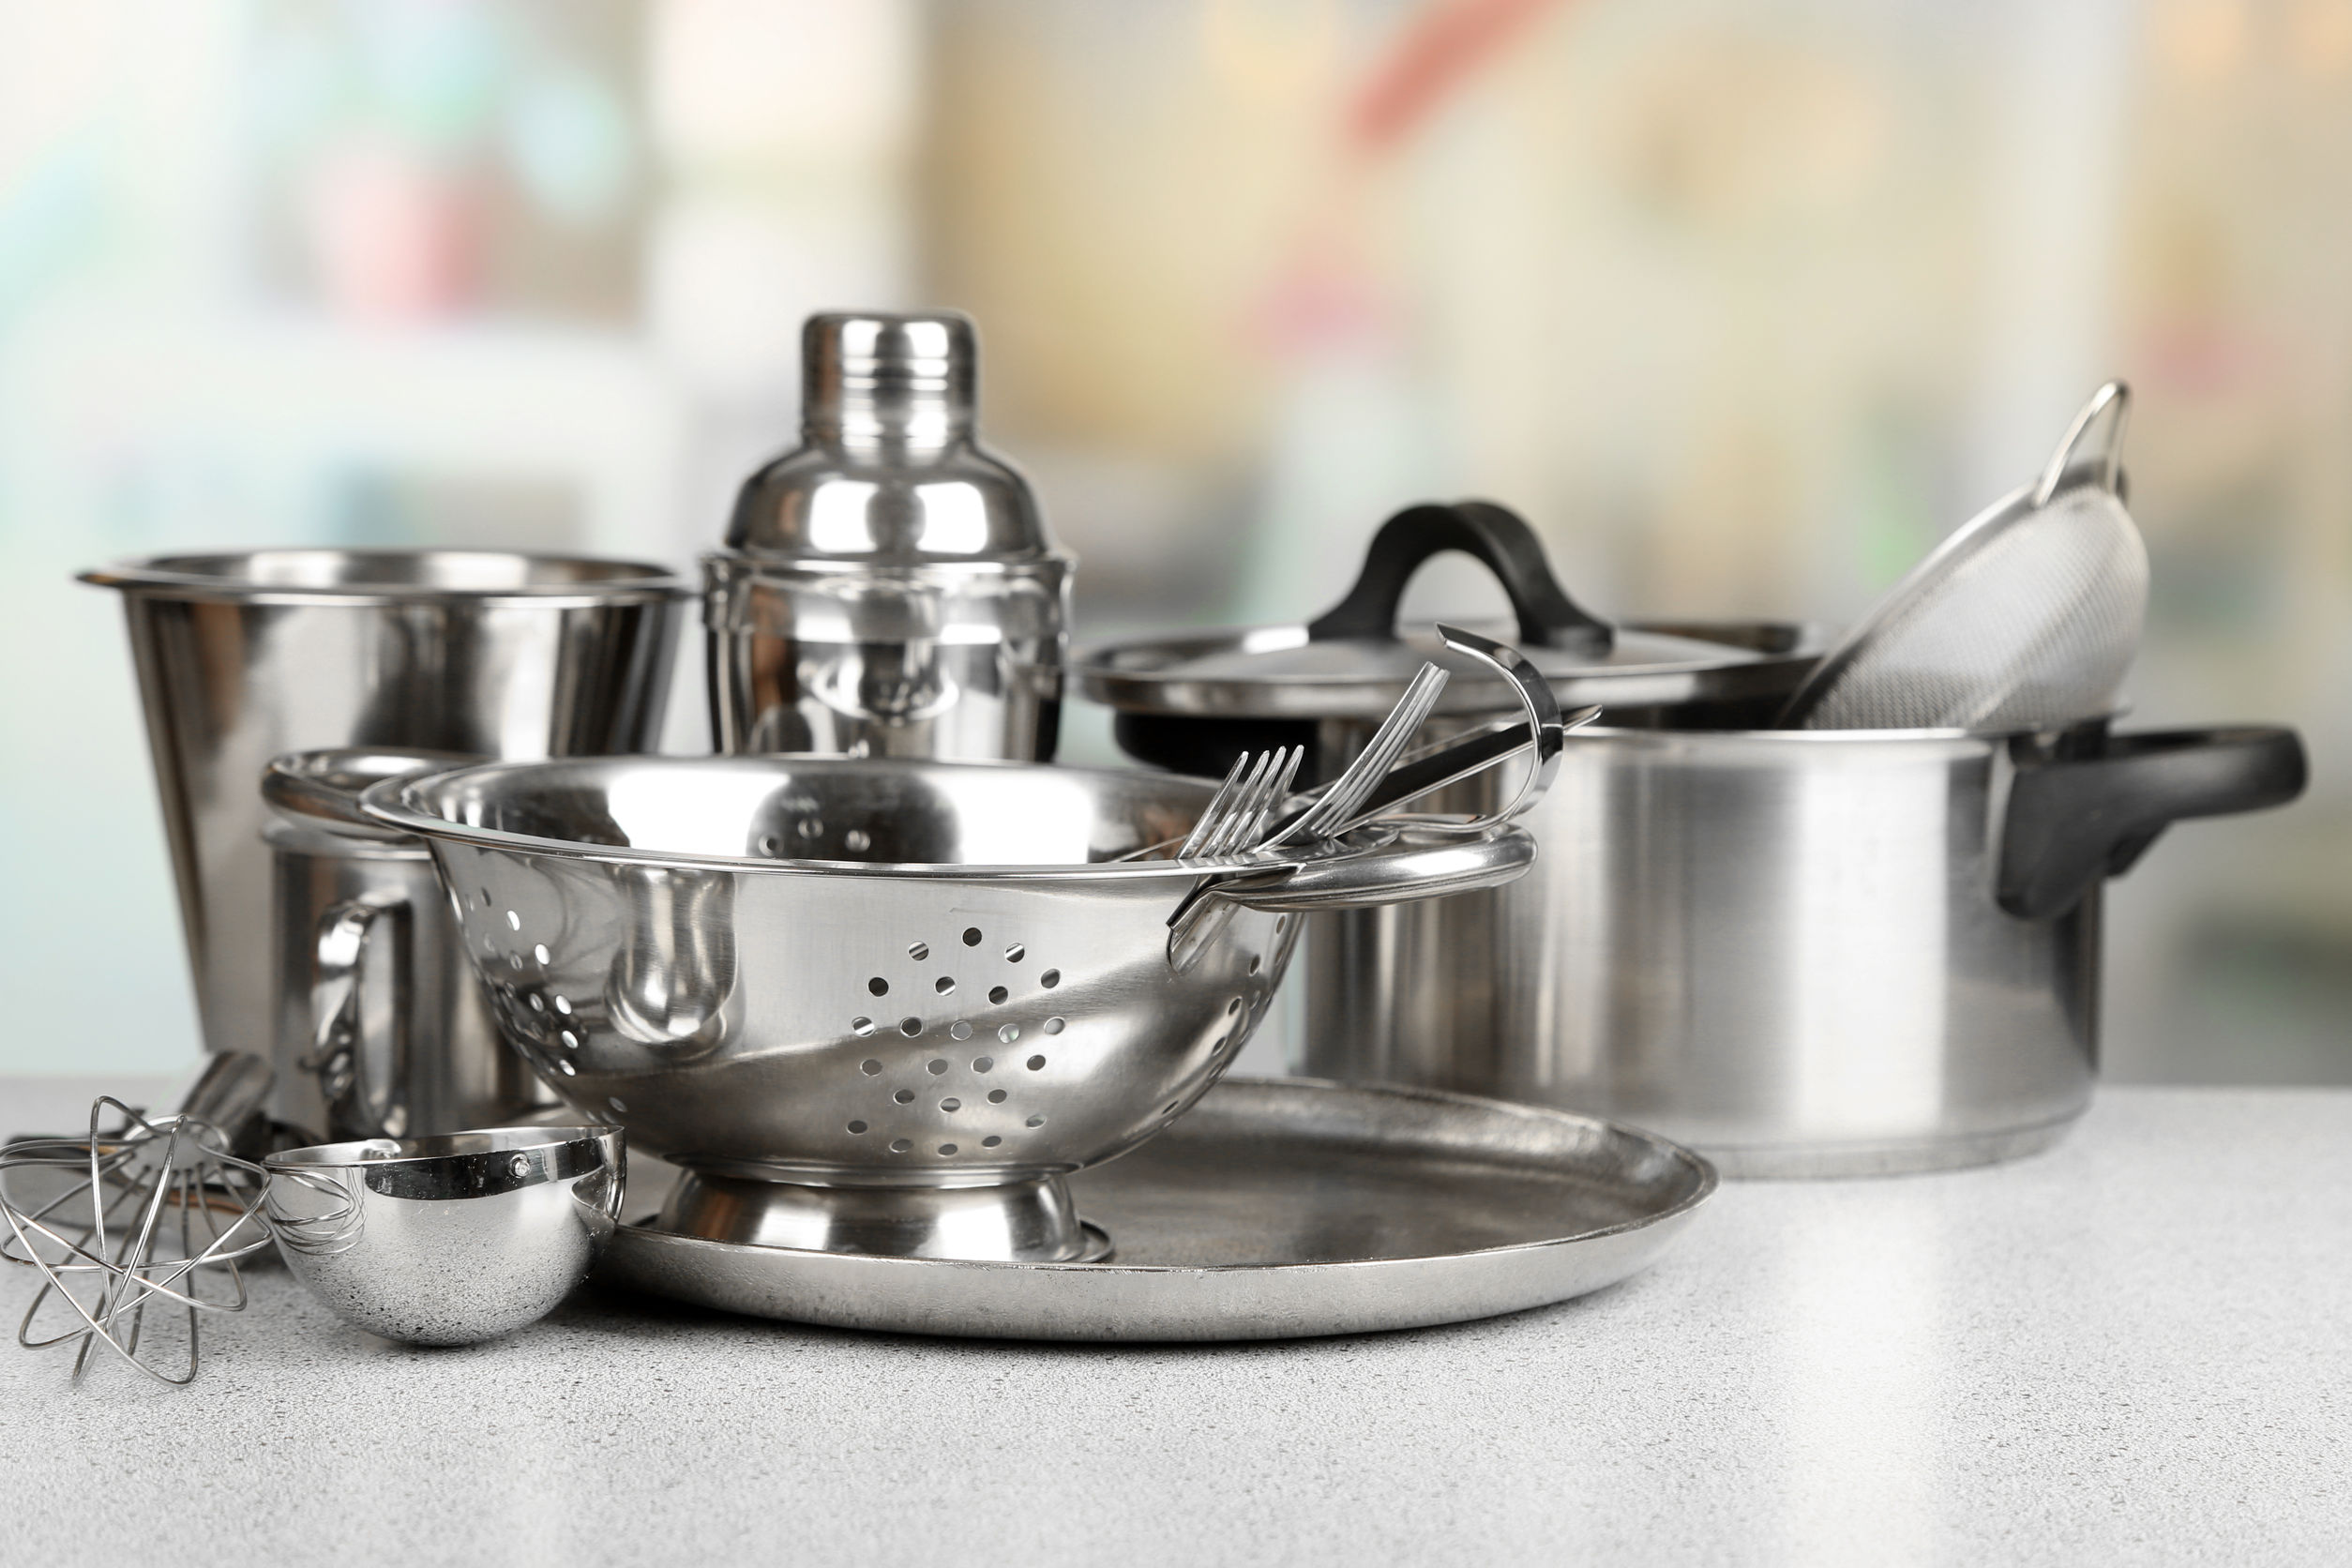 Stainless steel kitchenware on table, on light background